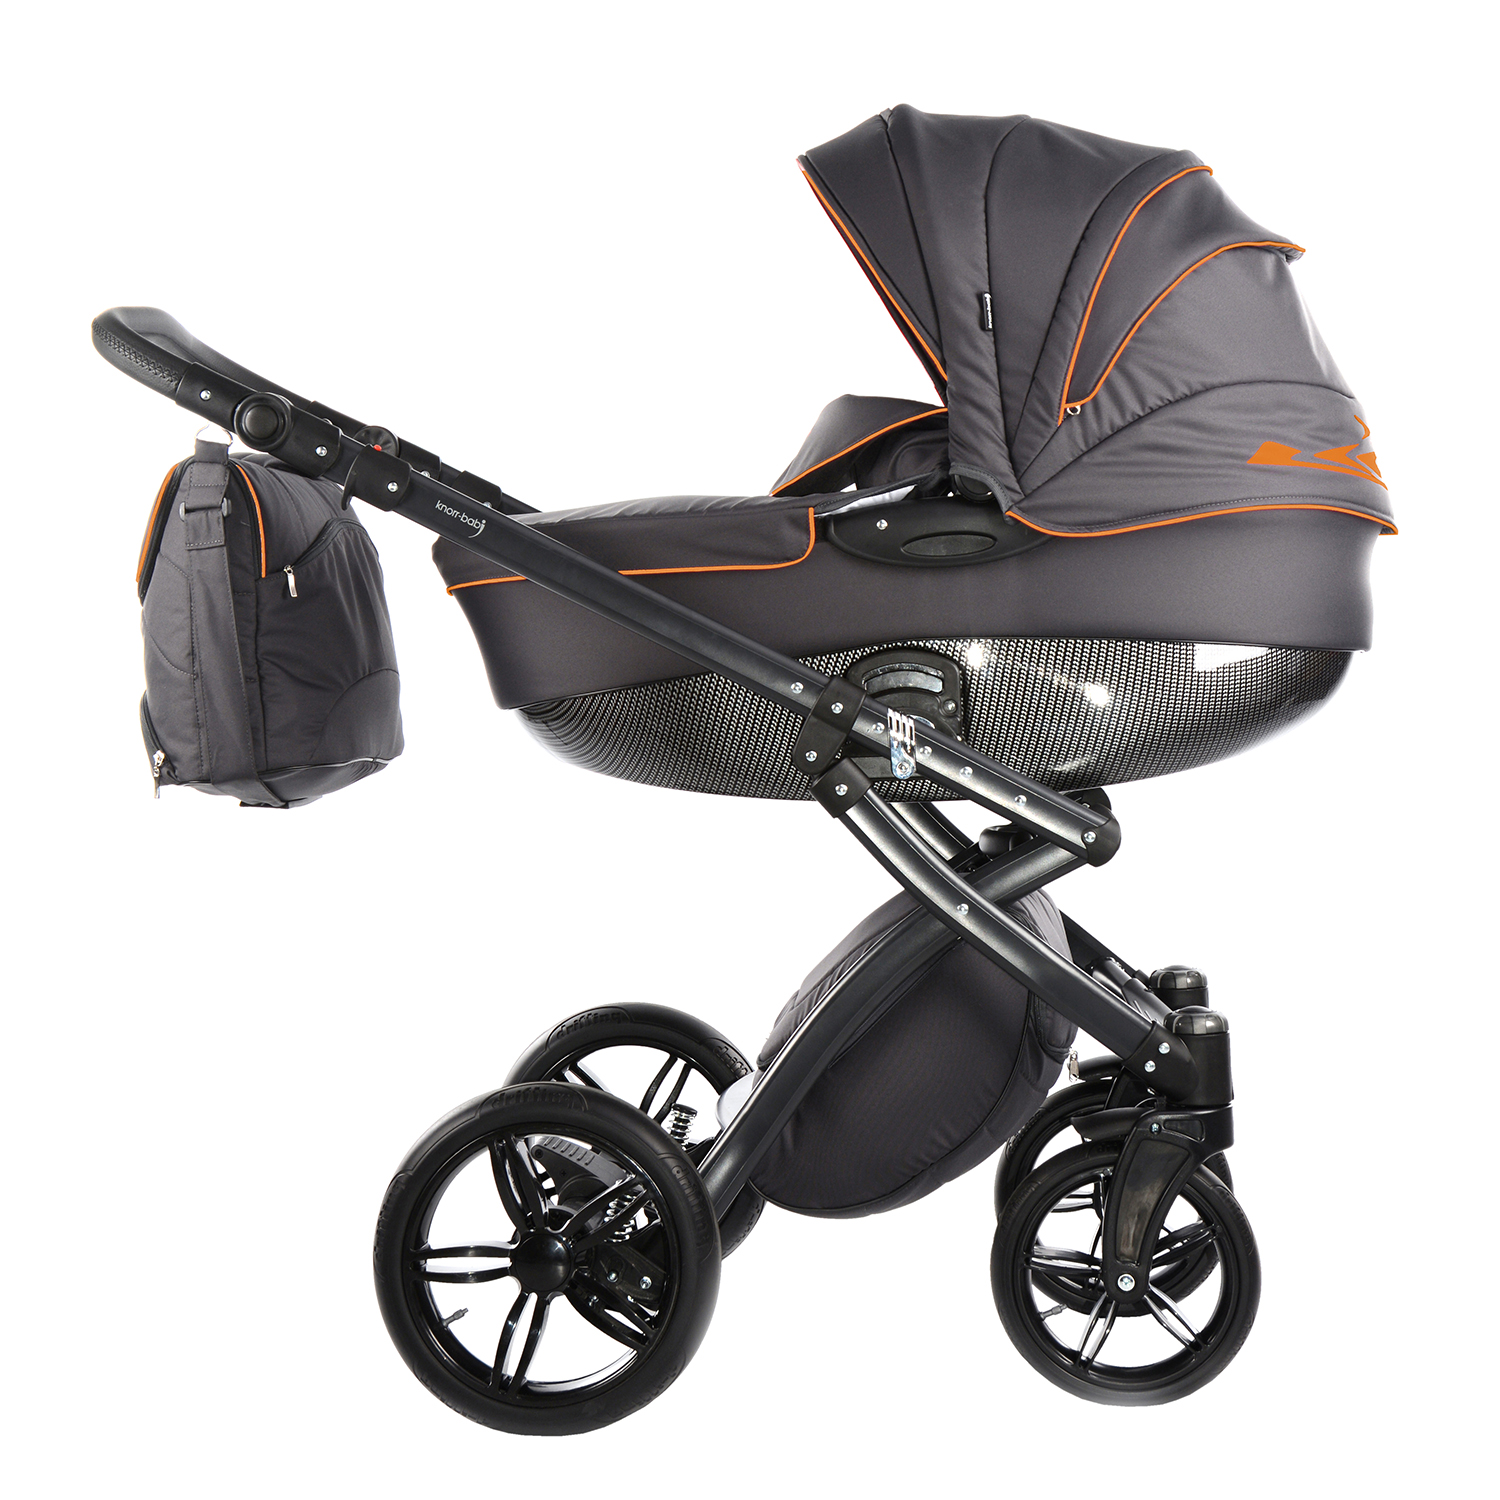 Knorr Kinderwagen Online Shop Kombi Kinderwagen Alive Be Carbon Dunkelgrau Orange